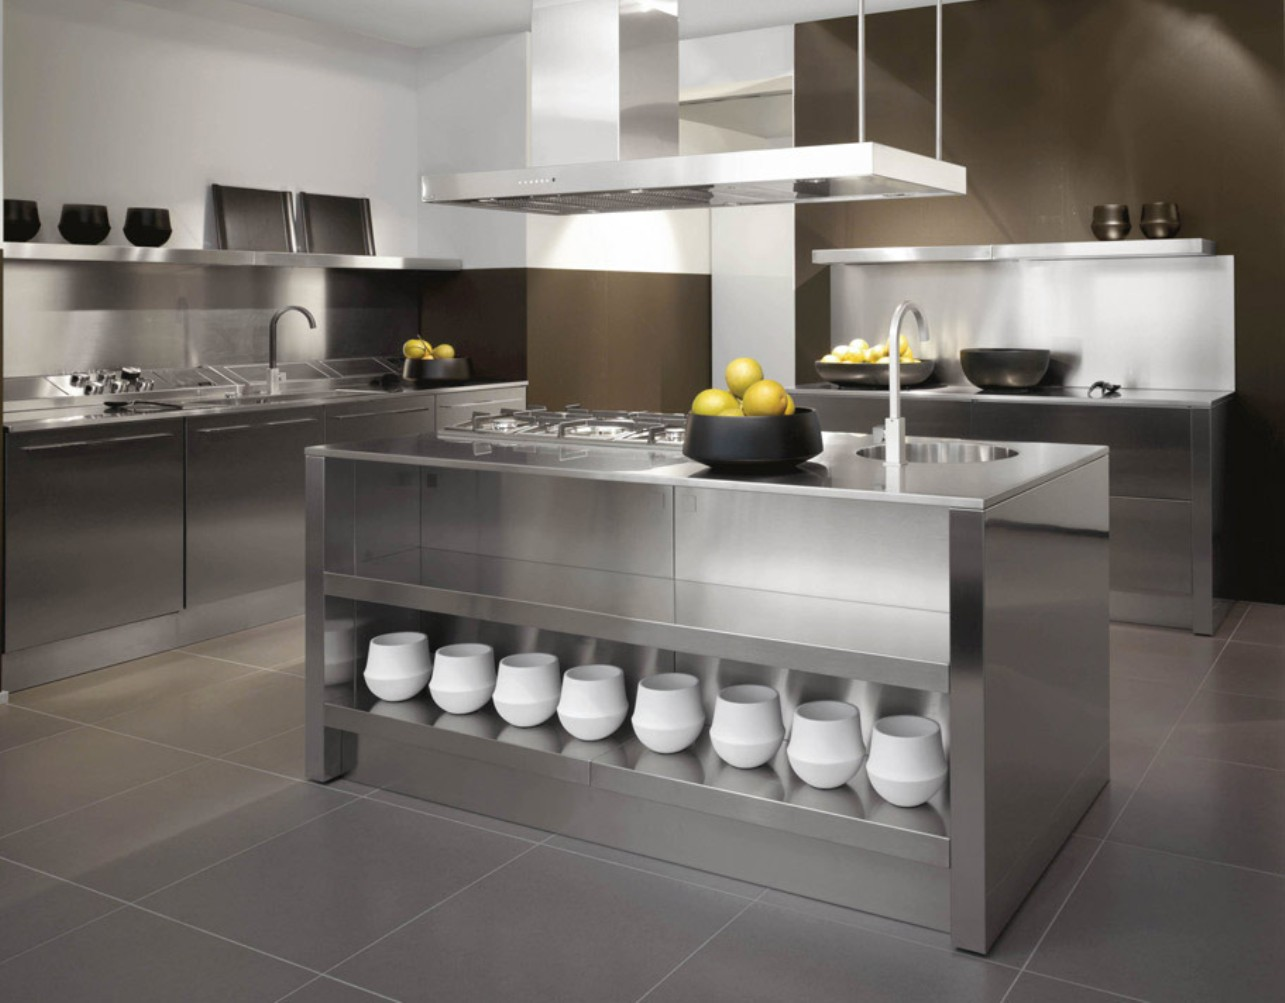 Attractive Stainless Steel Kitchen Cabinets also Rectangular Pendant Light Fixture